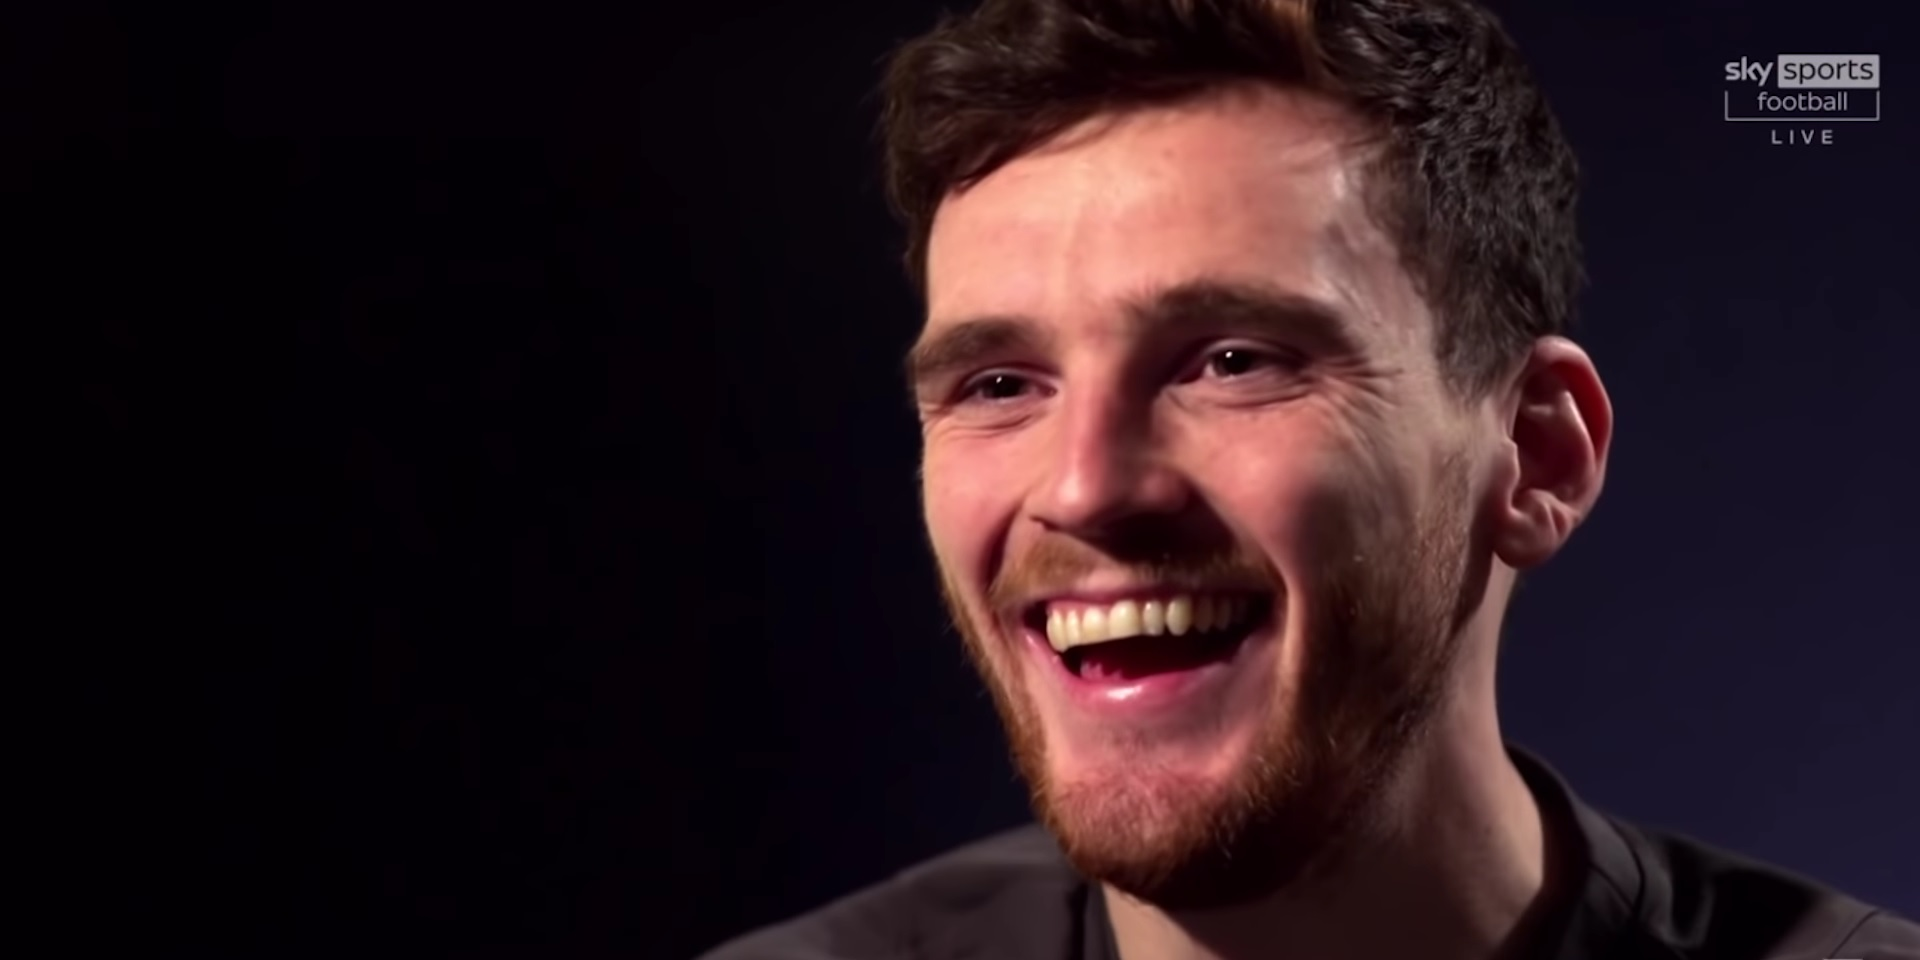 "(Video) Robertson reveals funny rondo rivalry: ""Ox has it in for me to be honest!"""